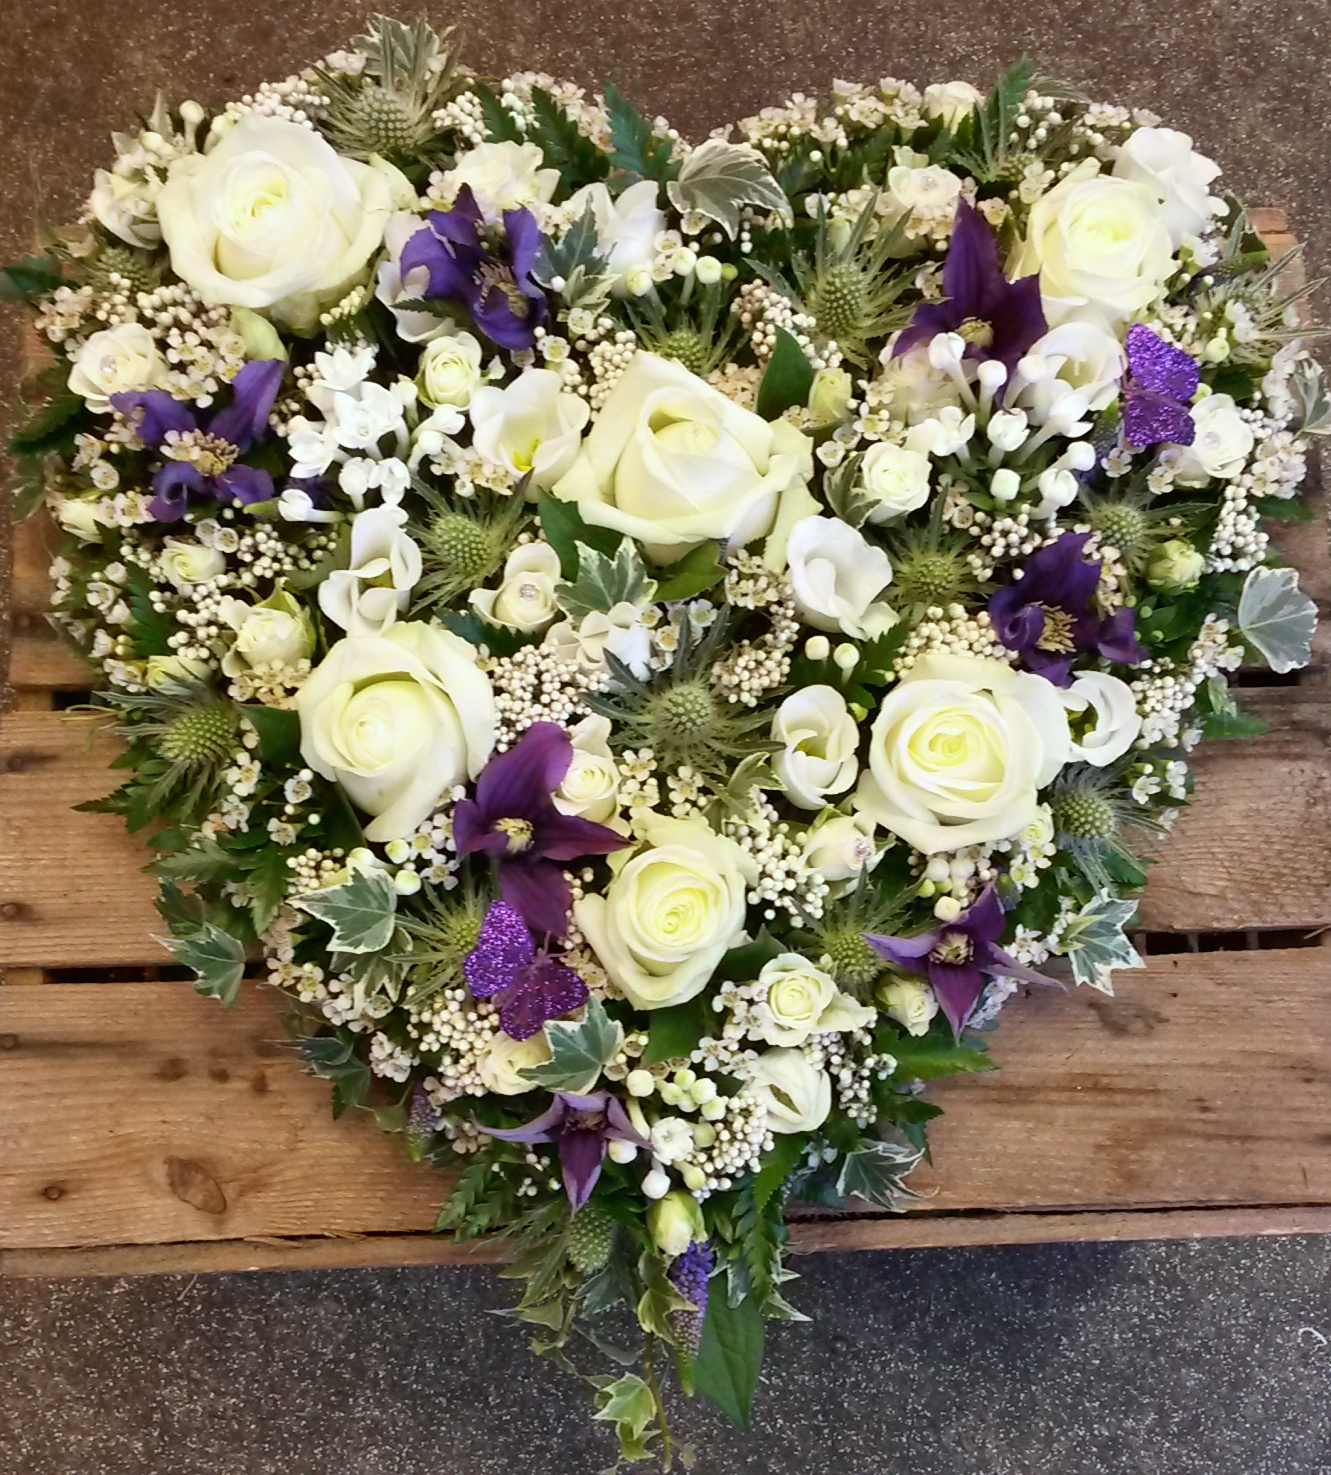 Funeral flowers page 3 fleurt in monkseaton purple white heart funeral flowers izmirmasajfo Images